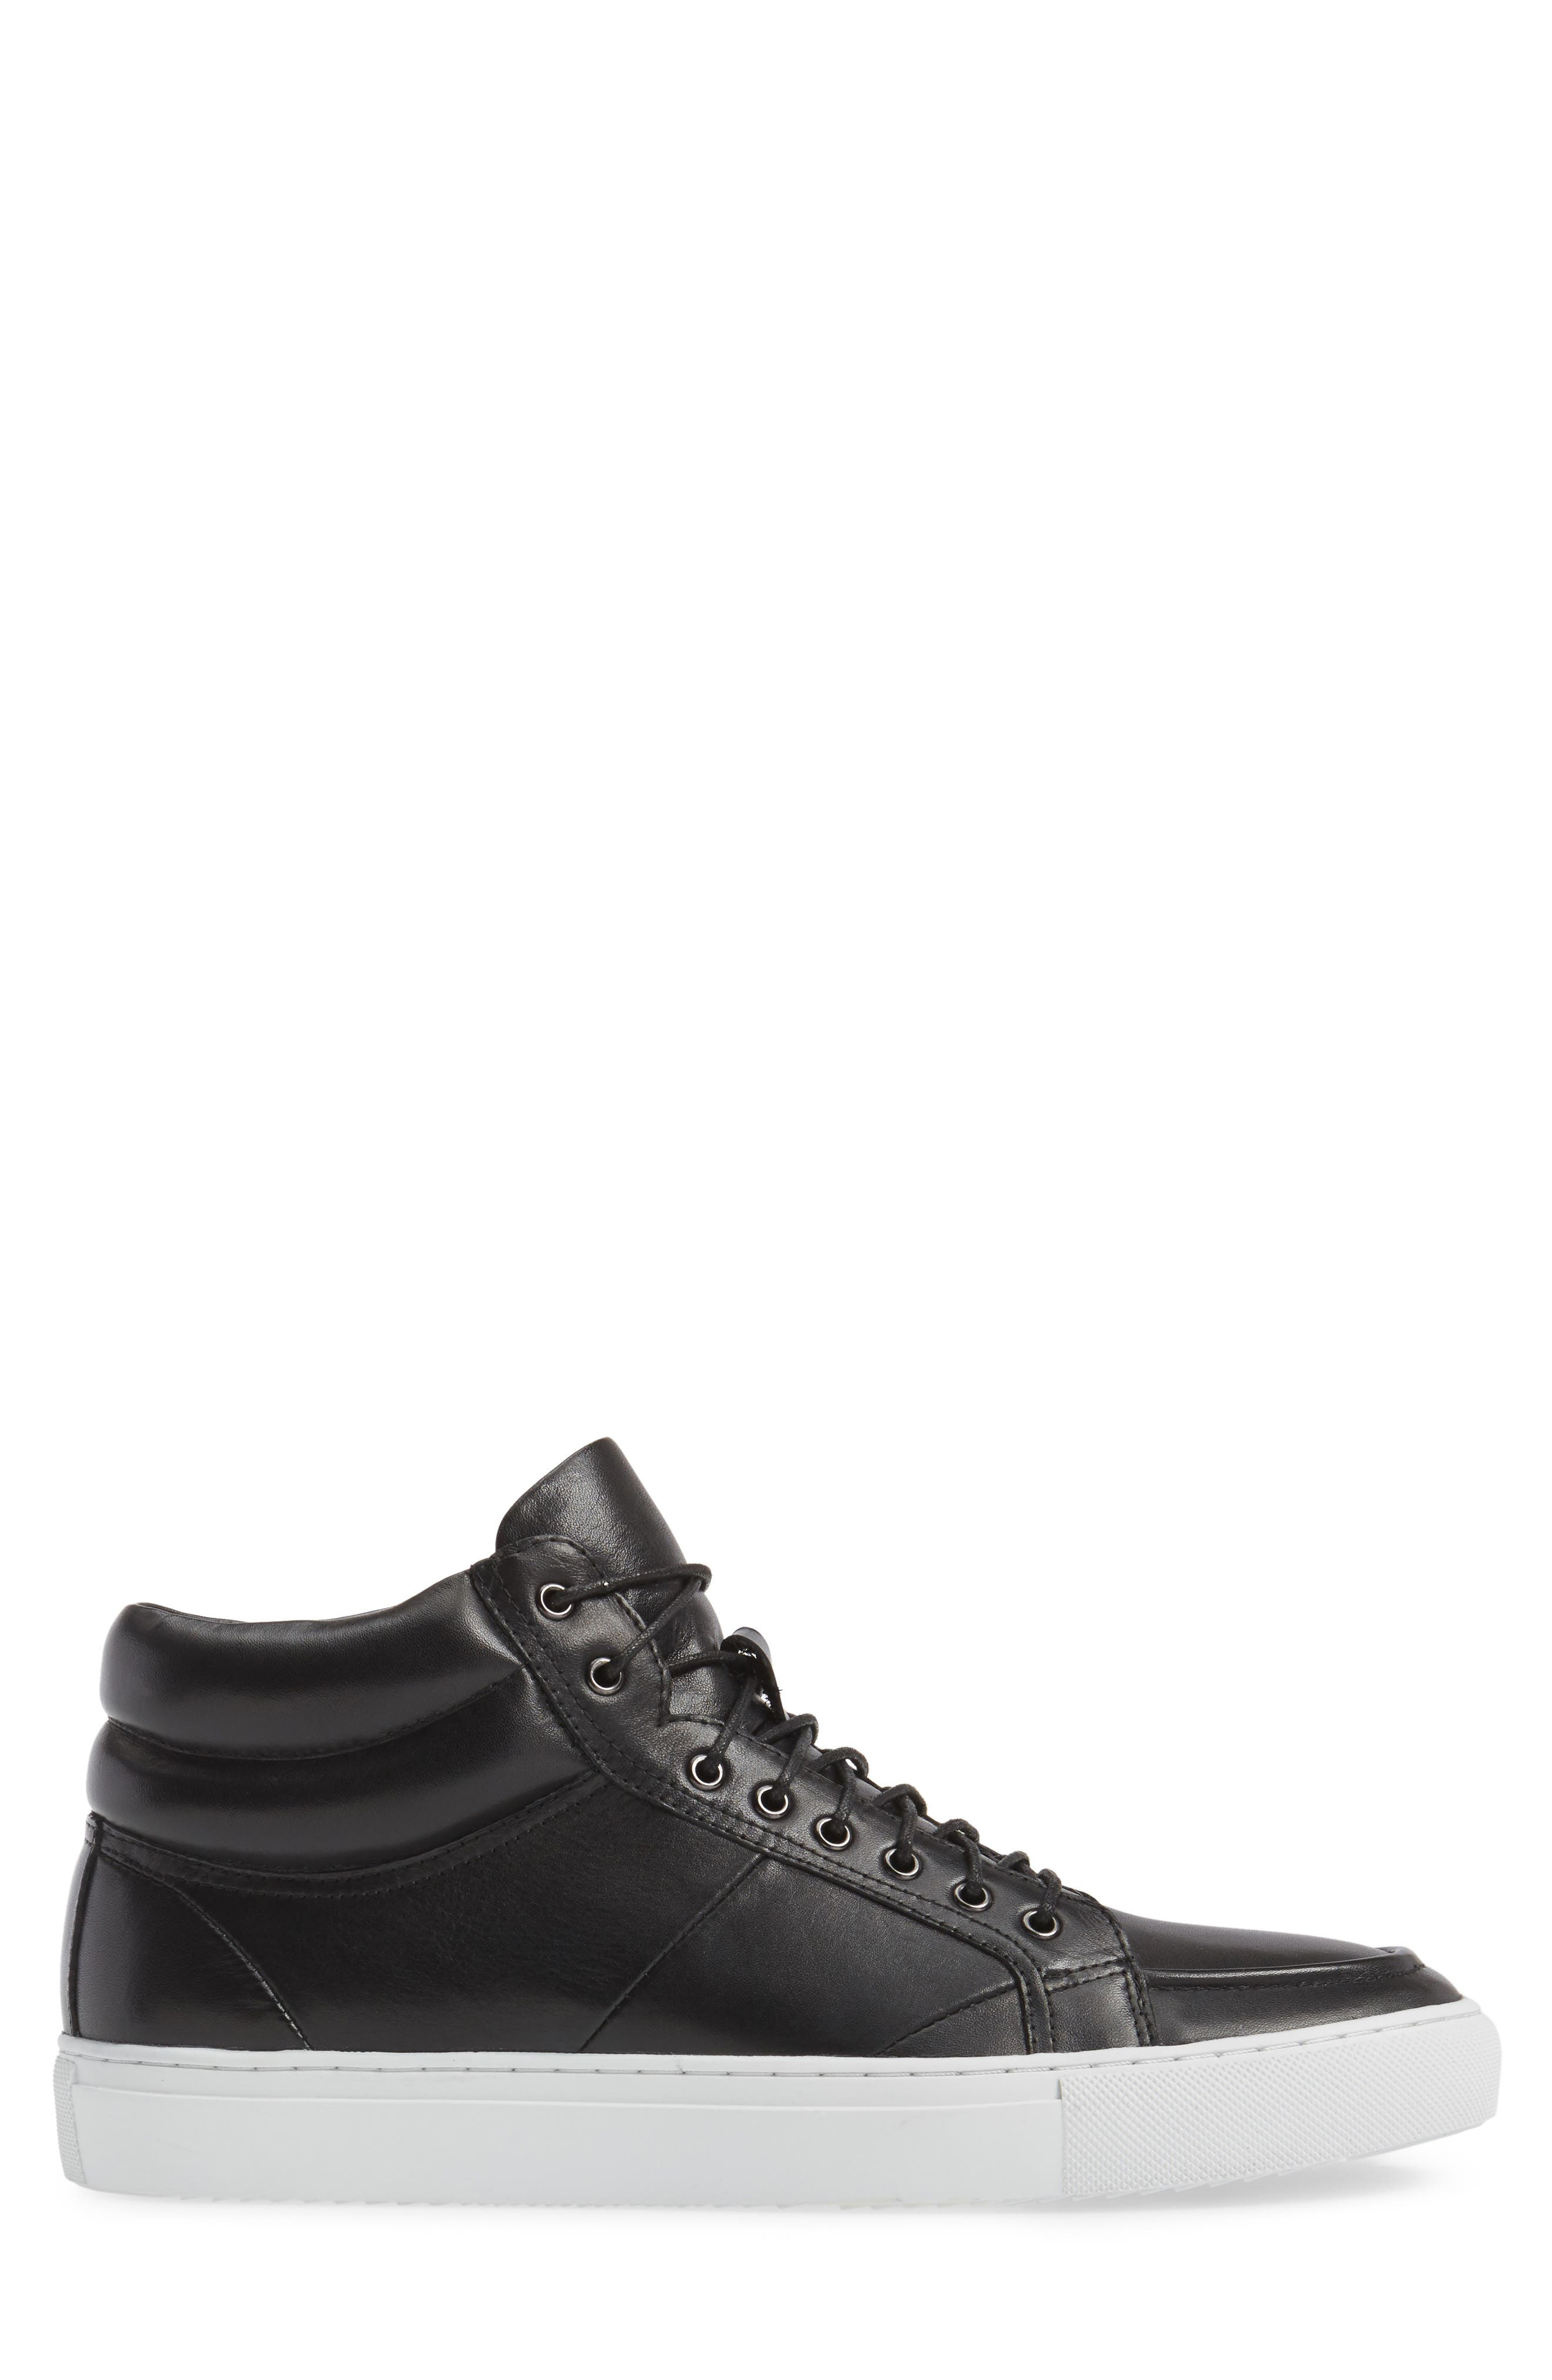 Alternate Image 3  - Zanzara Clef Sneaker (Men)